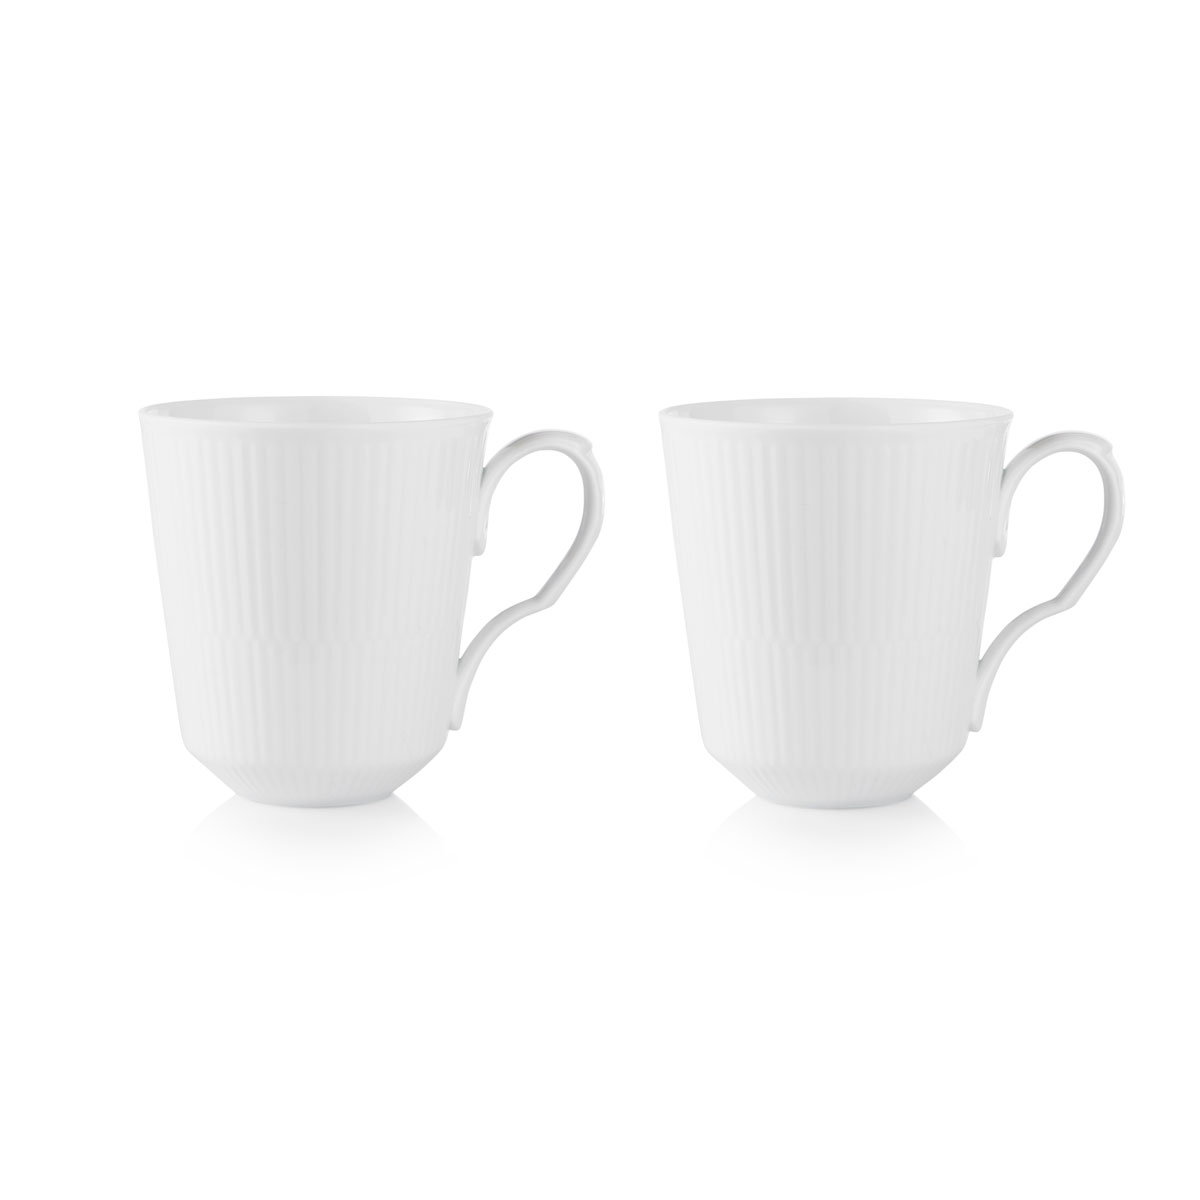 Royal Copenhagen, White Fluted Mug 12.25oz. Pair